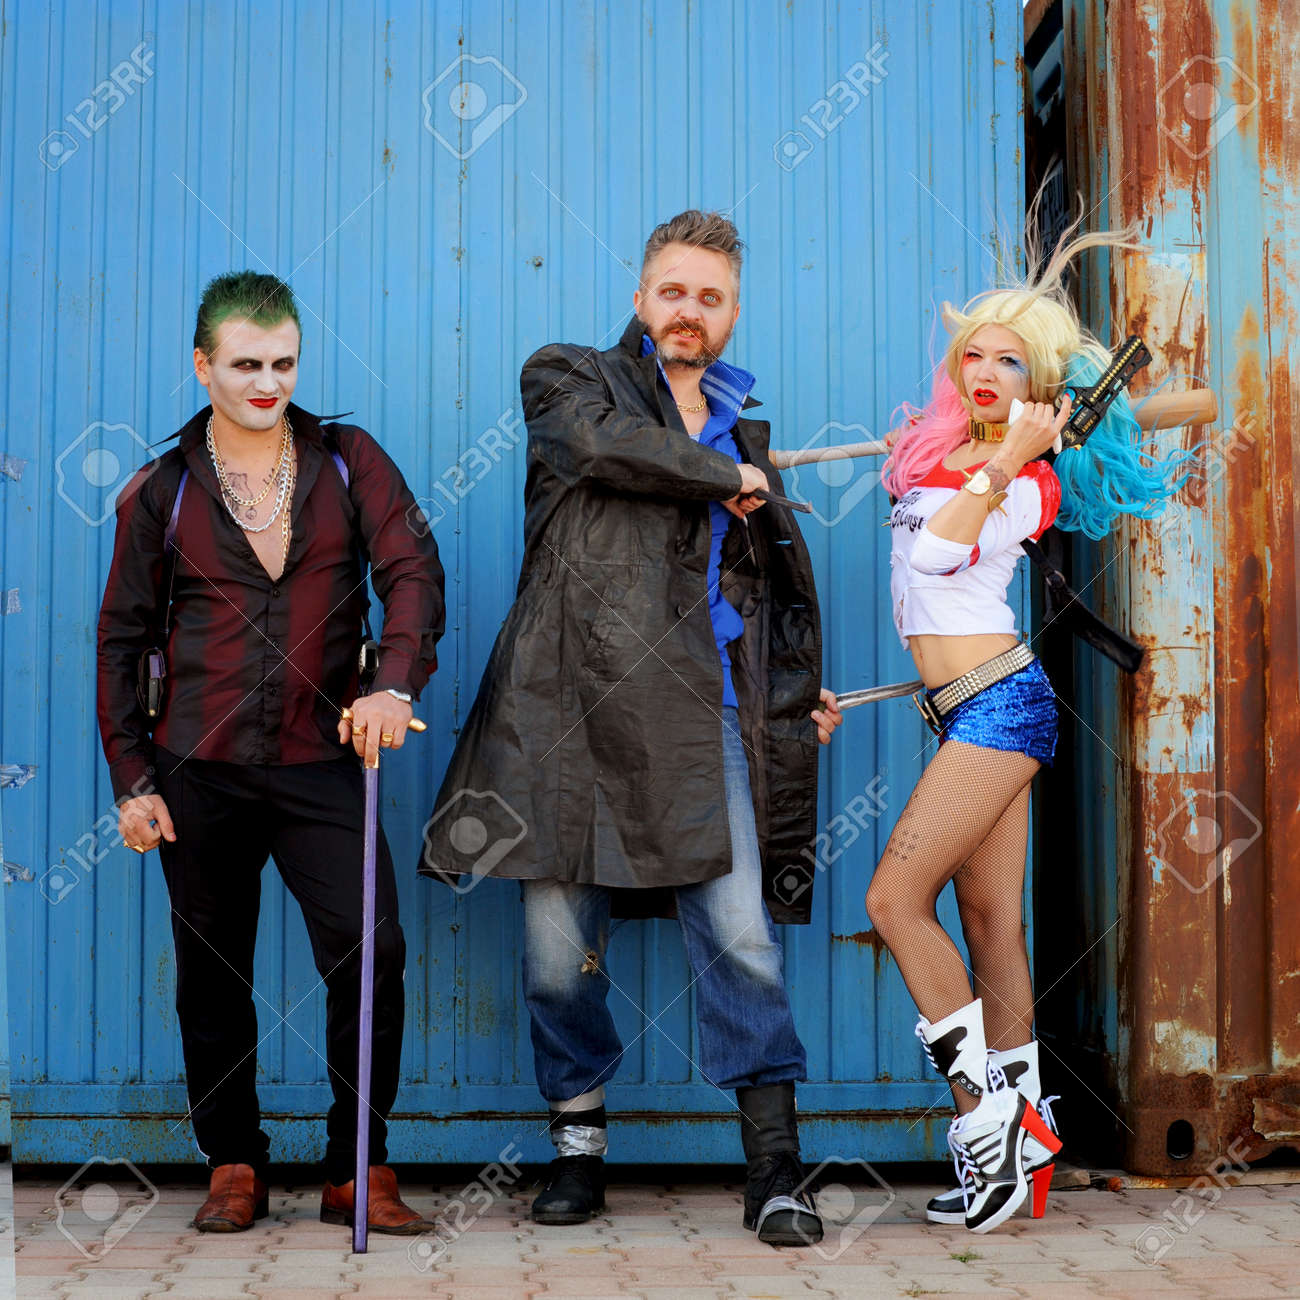 Cosplayer girl in Harley Quinn costume and cosplayer men in Joker and Boomerang costumes Stock Photo  sc 1 st  123RF.com & Cosplayer Girl In Harley Quinn Costume And Cosplayer Men In Joker ...